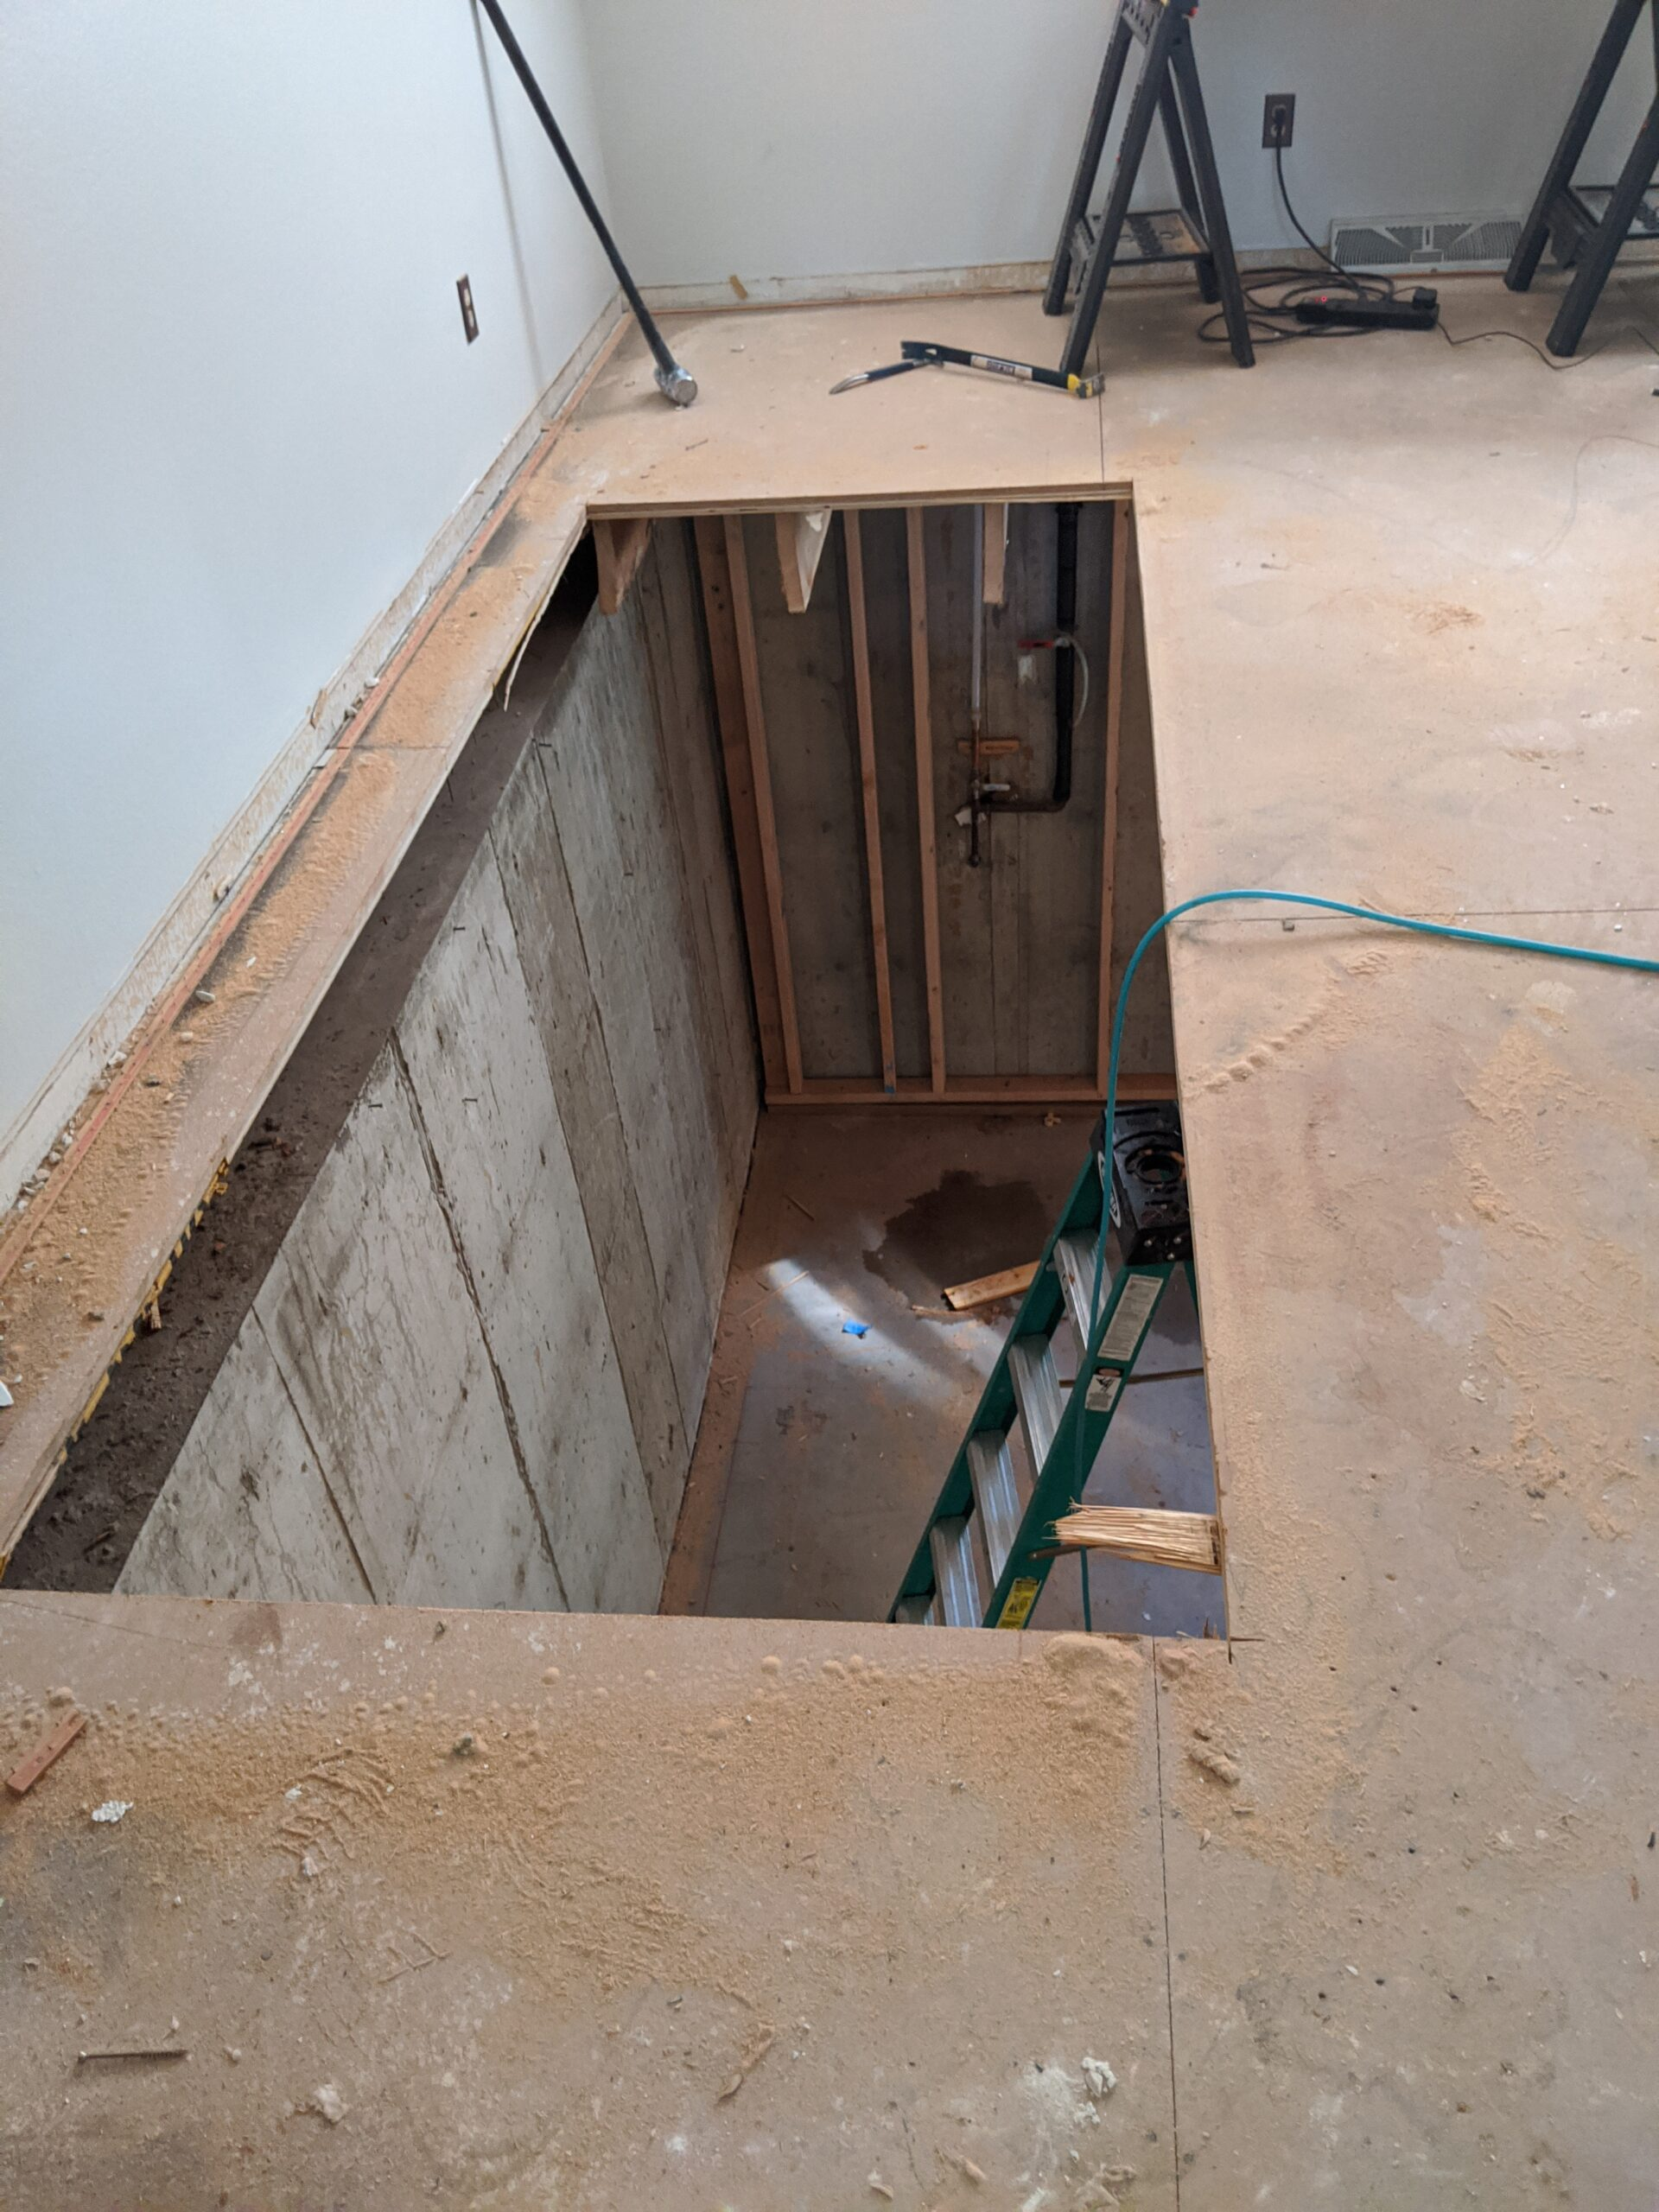 IN PROGRESS: The original stairs will be moved along the basement floor from the middle of the house to this new hole in the living room subfloor.